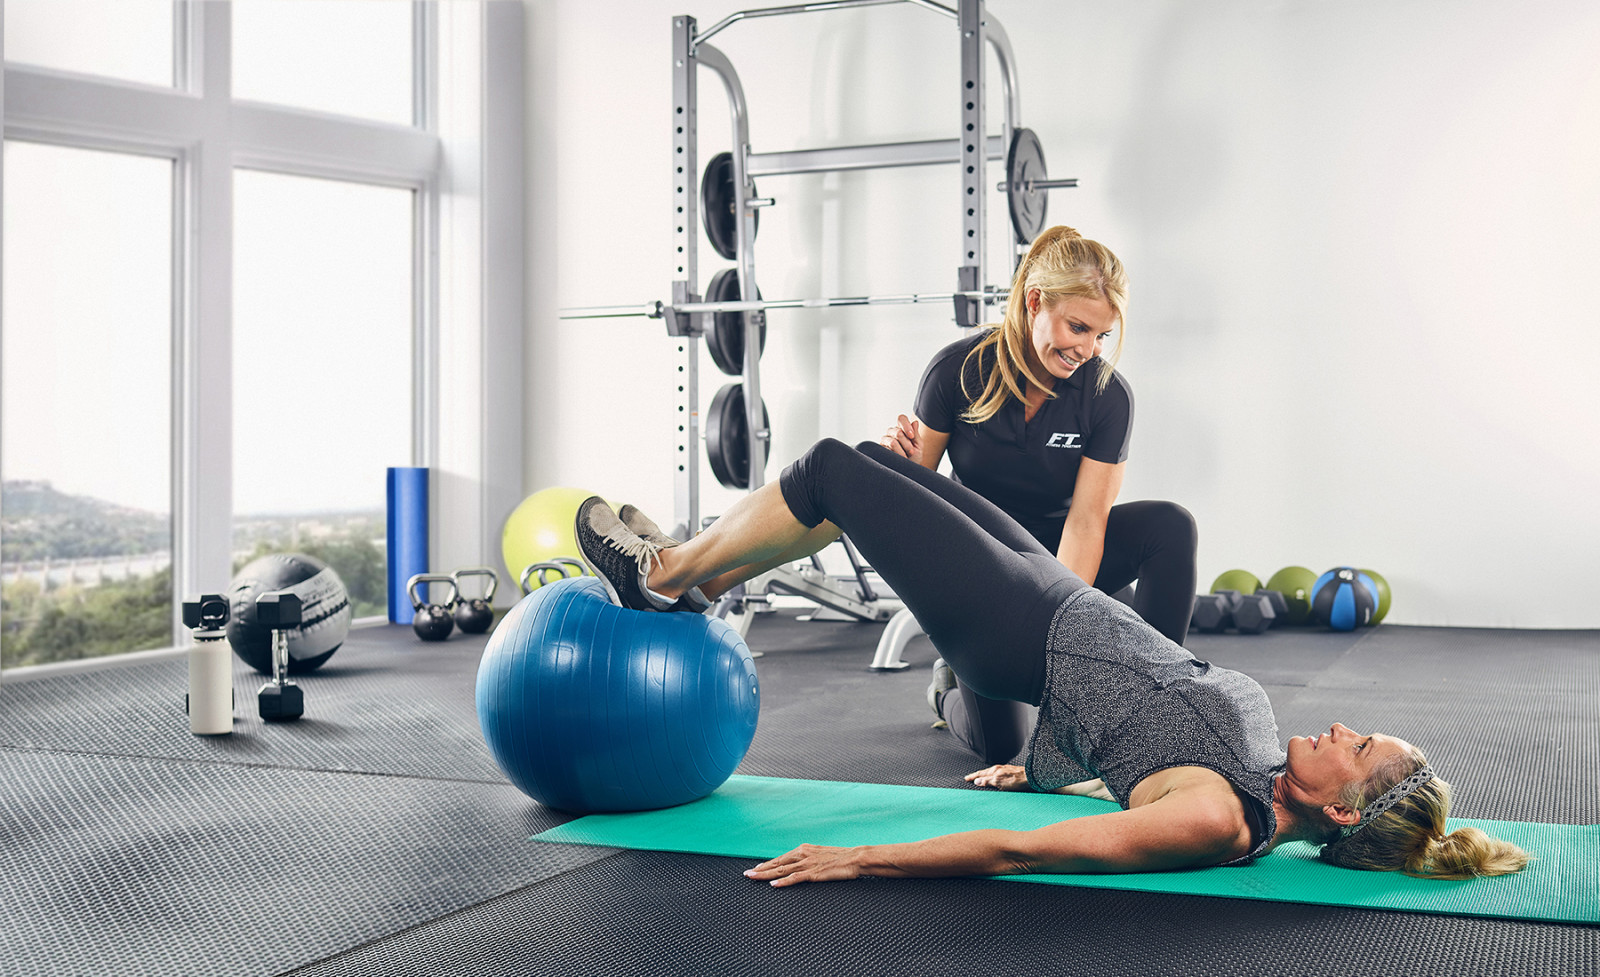 Fitness-Together-Poland-private-gym-personal-training-coronavirus